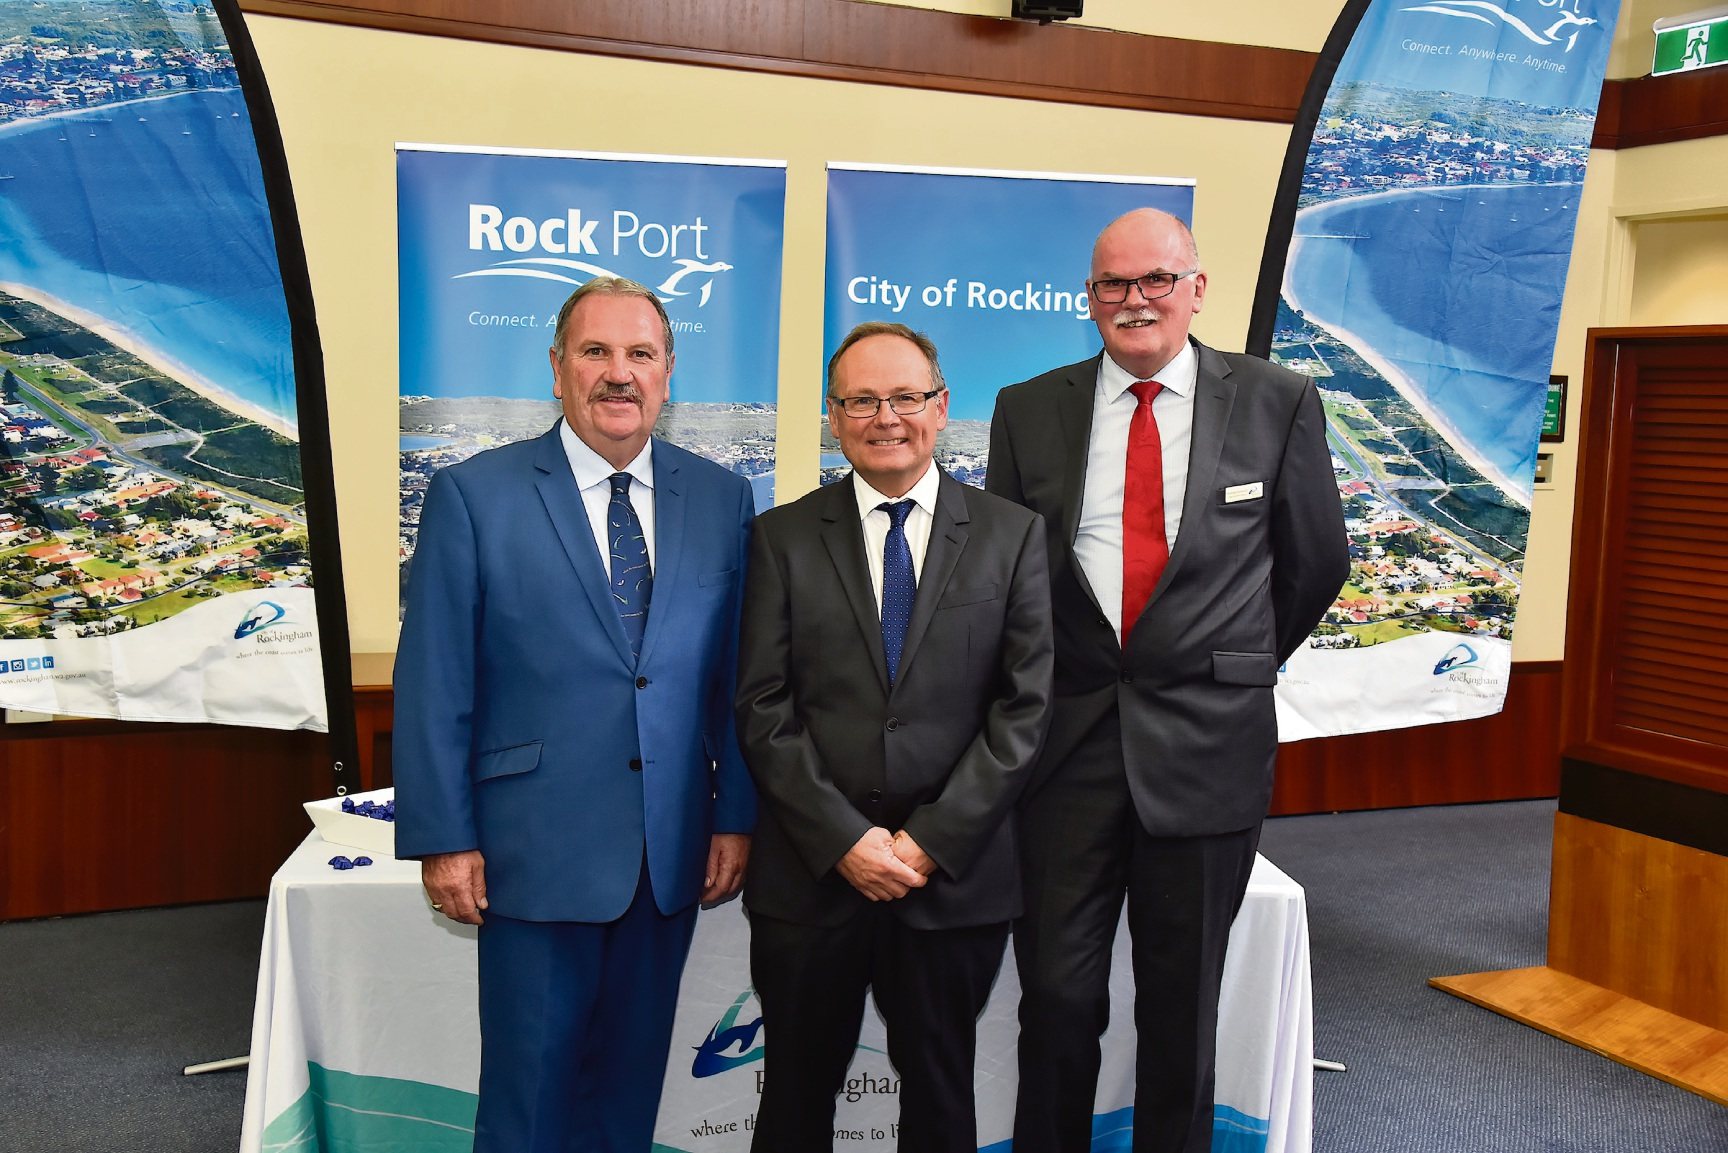 City of Rockingham chief executive Andrew Hammond (right) with Mayor Barry Sammels and Minister for Local Government David Templeman at the launch of Rock Port.